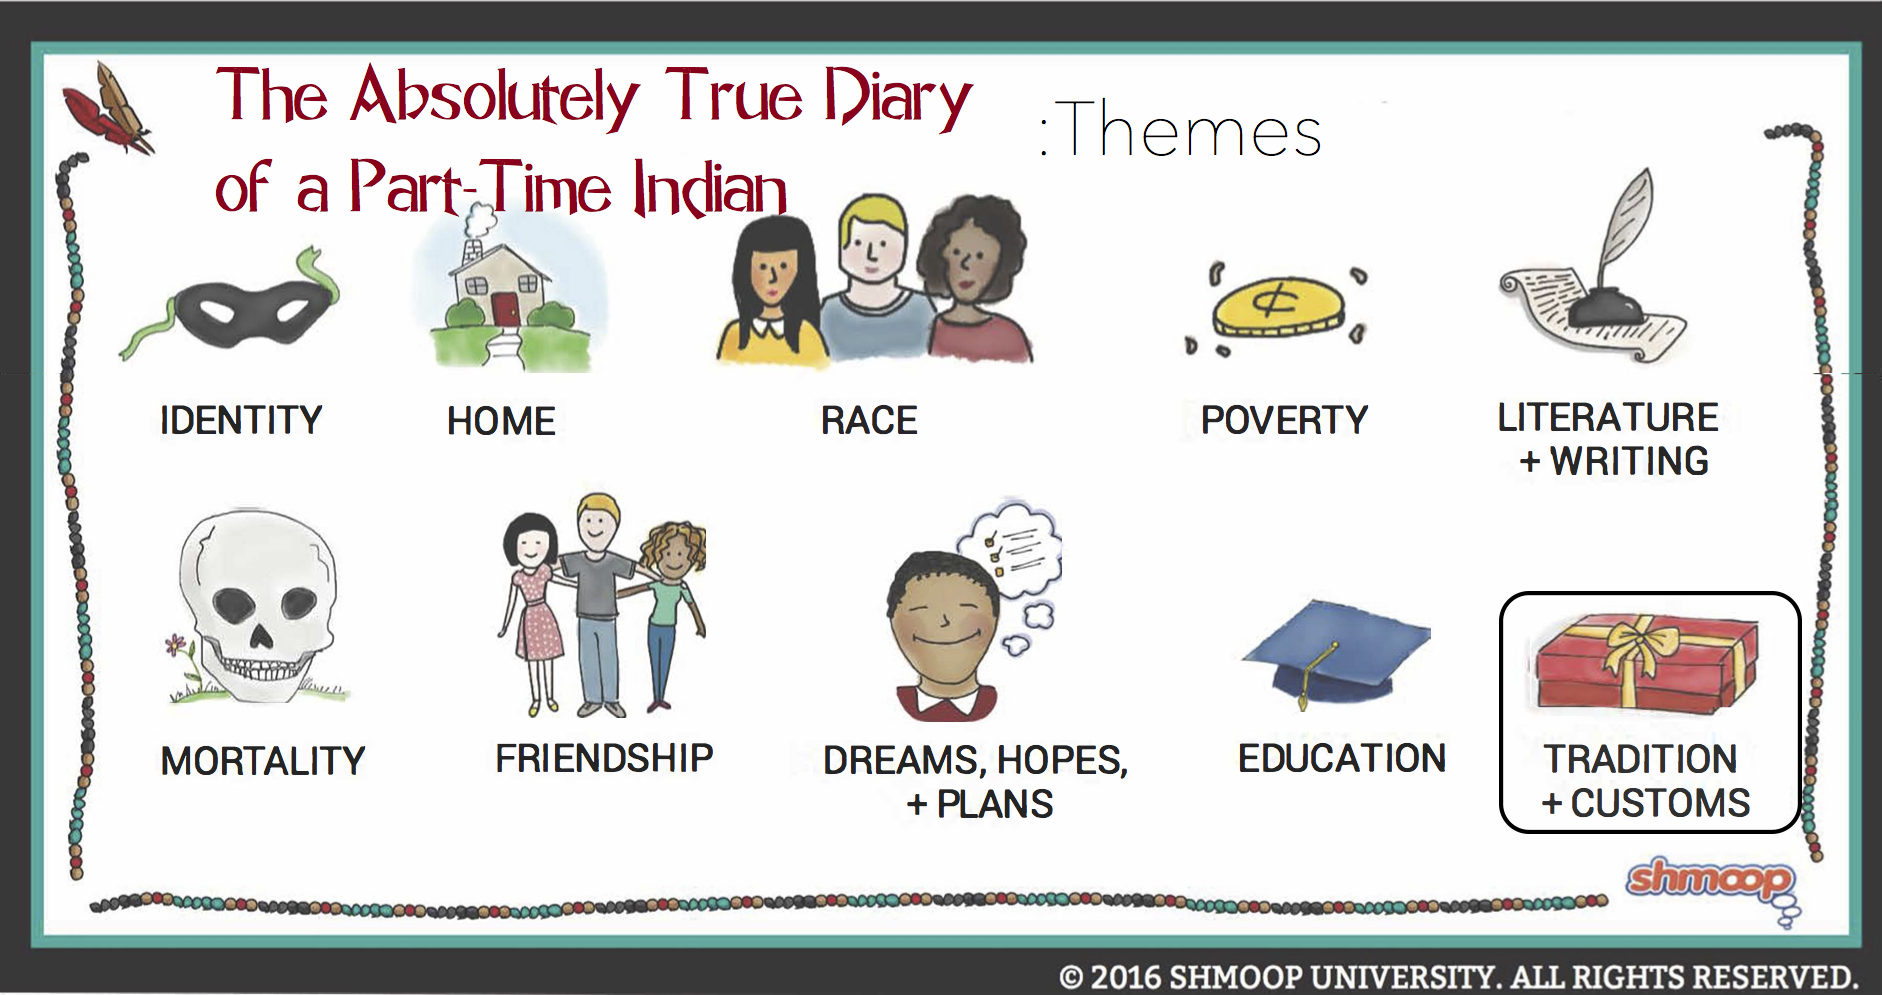 Absolutely True Diary Of A Part Time Indian Quotes Inspiration The Absolutely True Diary Of A Parttime Indian Theme Of Tradition .